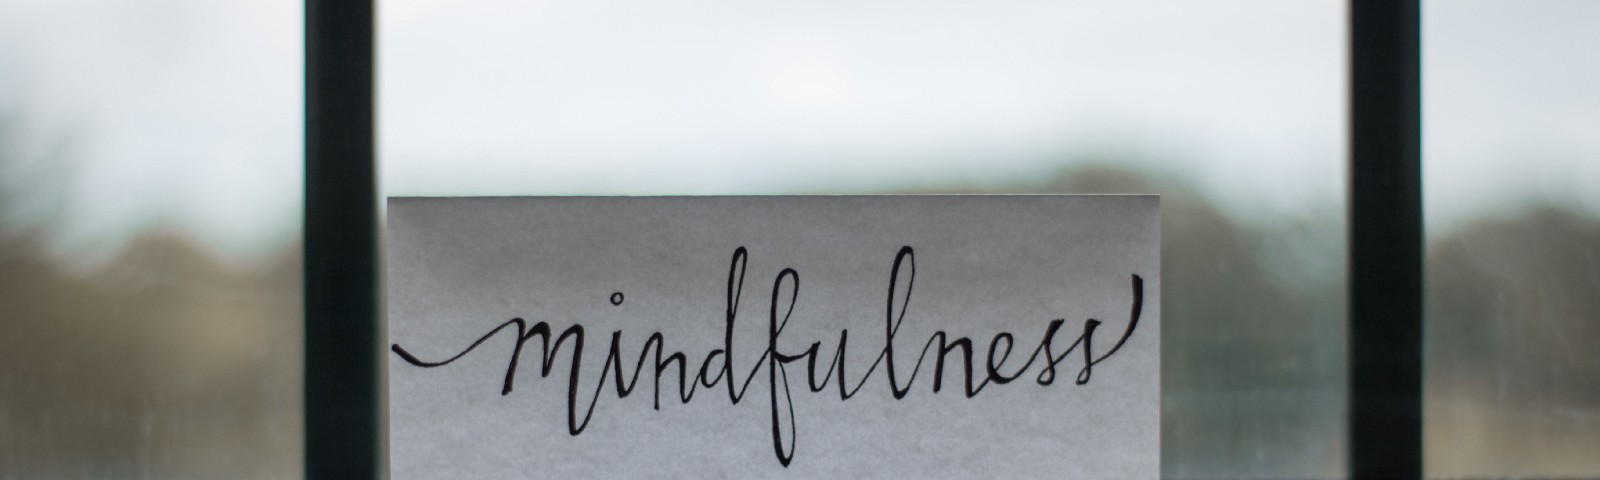 The word mindfulness written on a piece of paper by a window